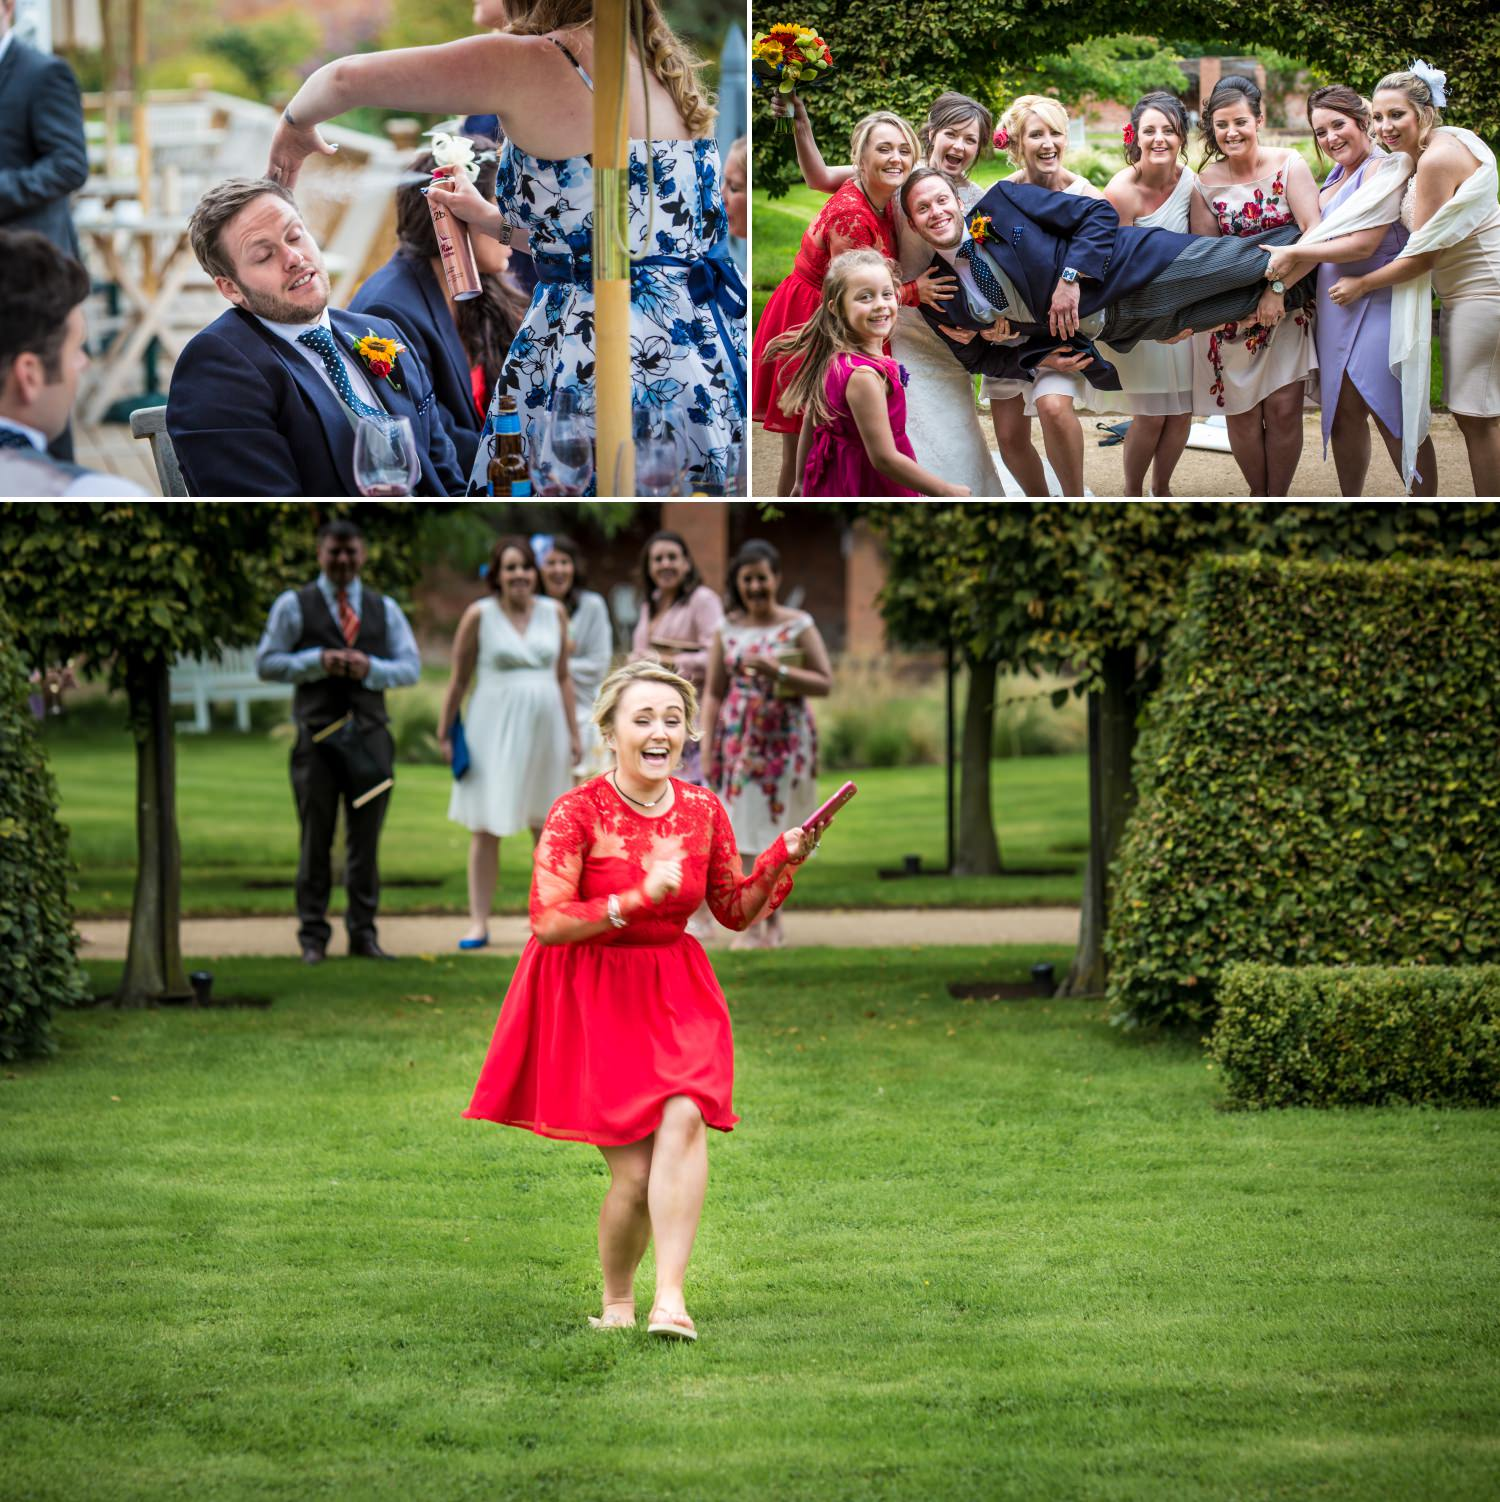 Wedding guests at Cheshire venue Combermere Abbey